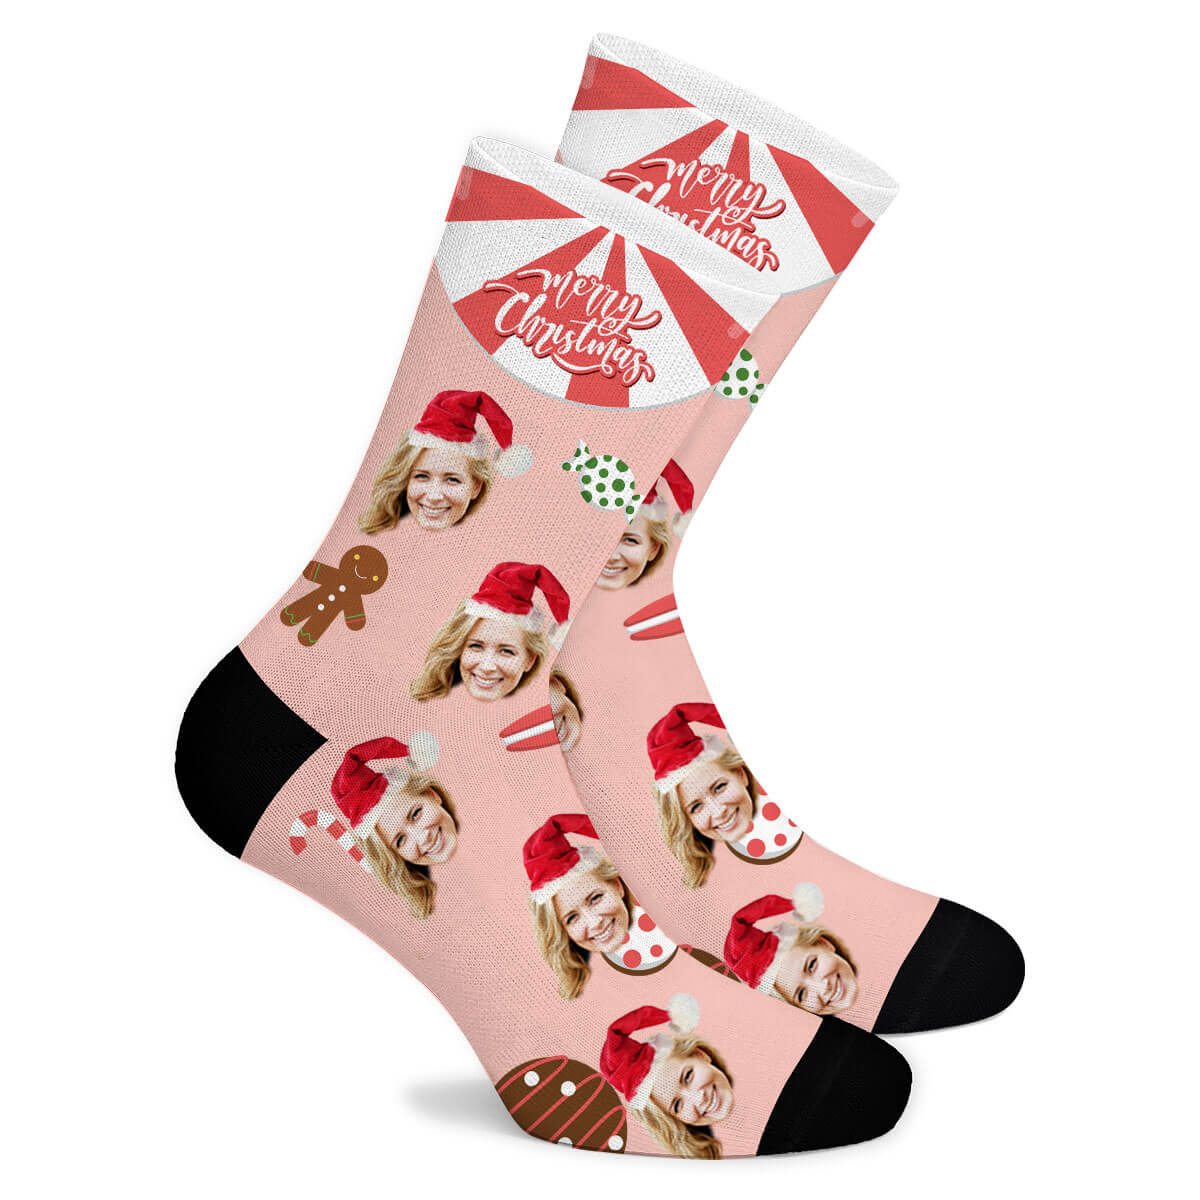 Christmas Candy Custom Socks - Make Face Socks